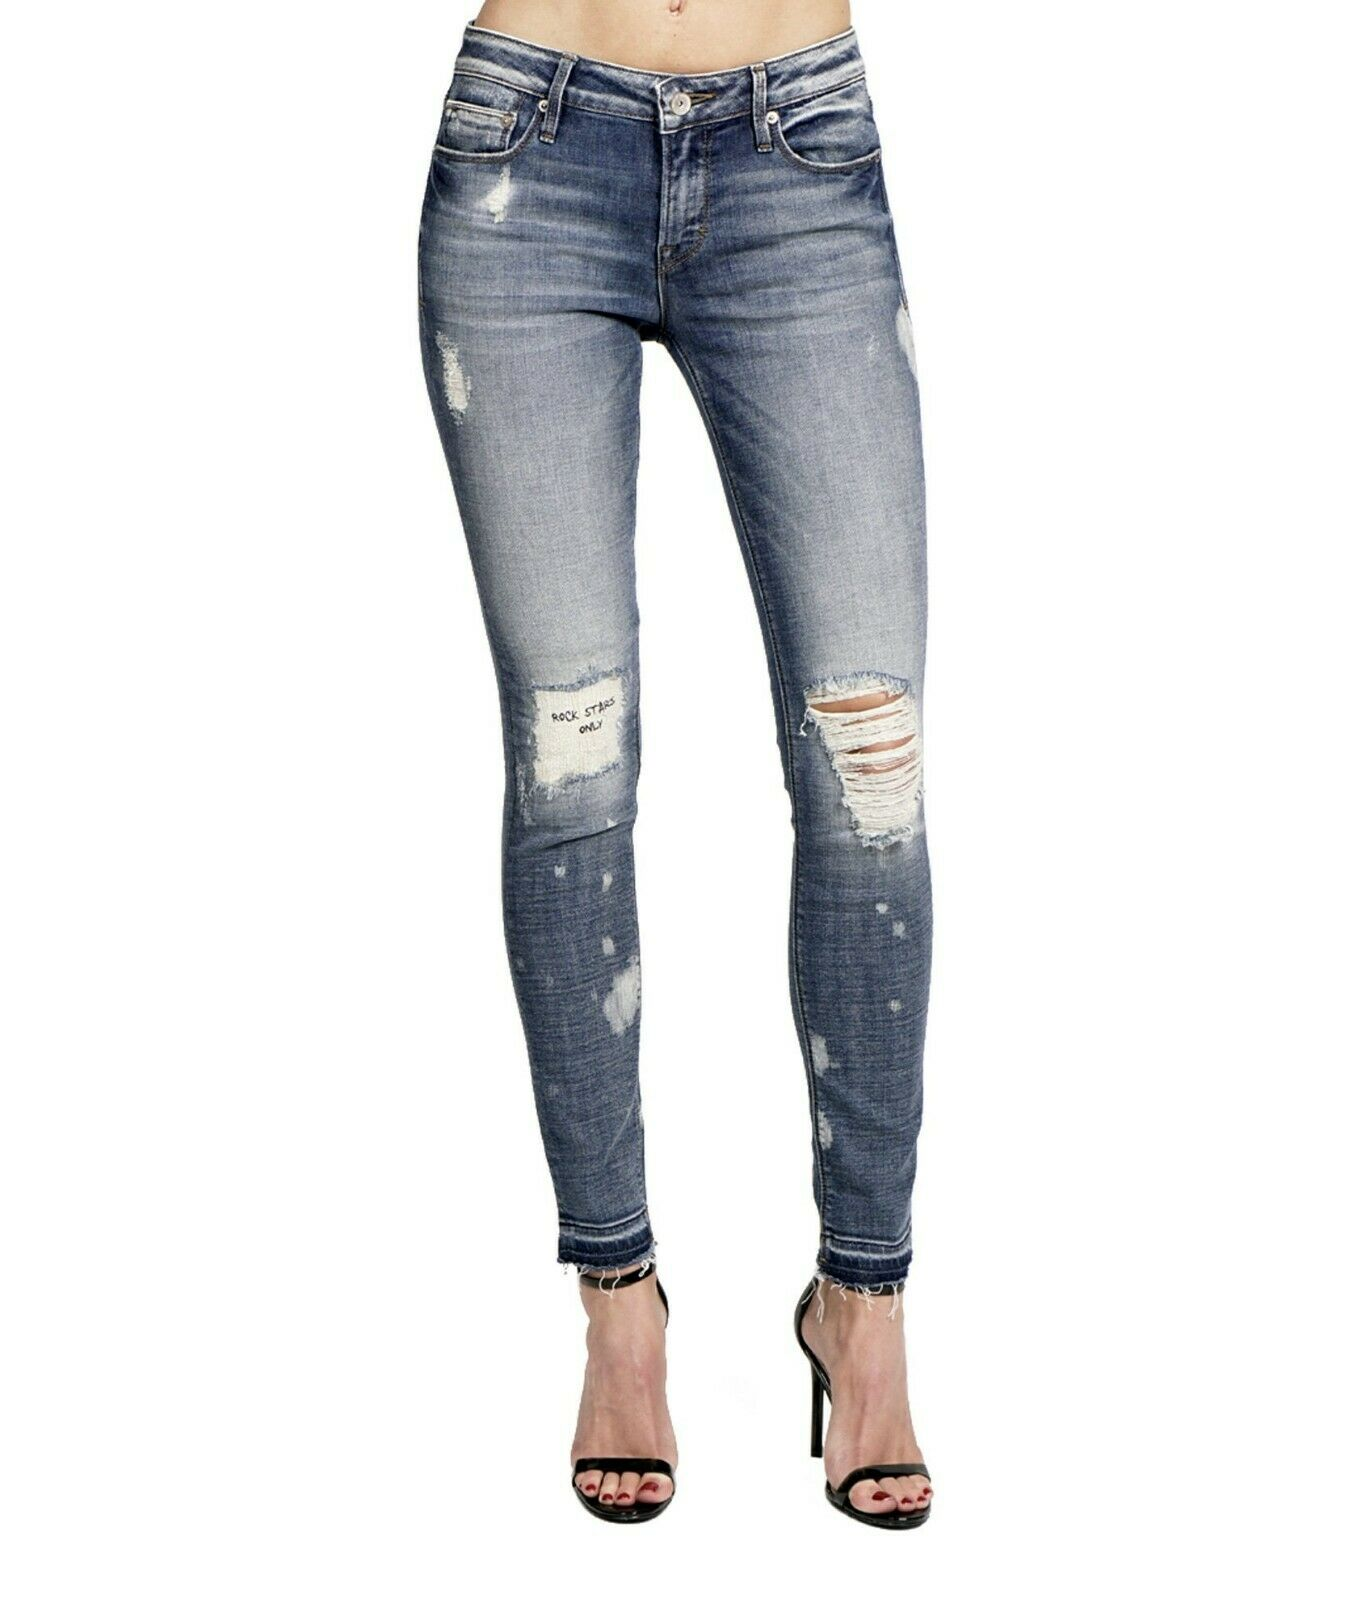 Cult Of Individuality Women's Zen MIDRISE Skinny Jeans BRAND NEW 28-29-30-31 149